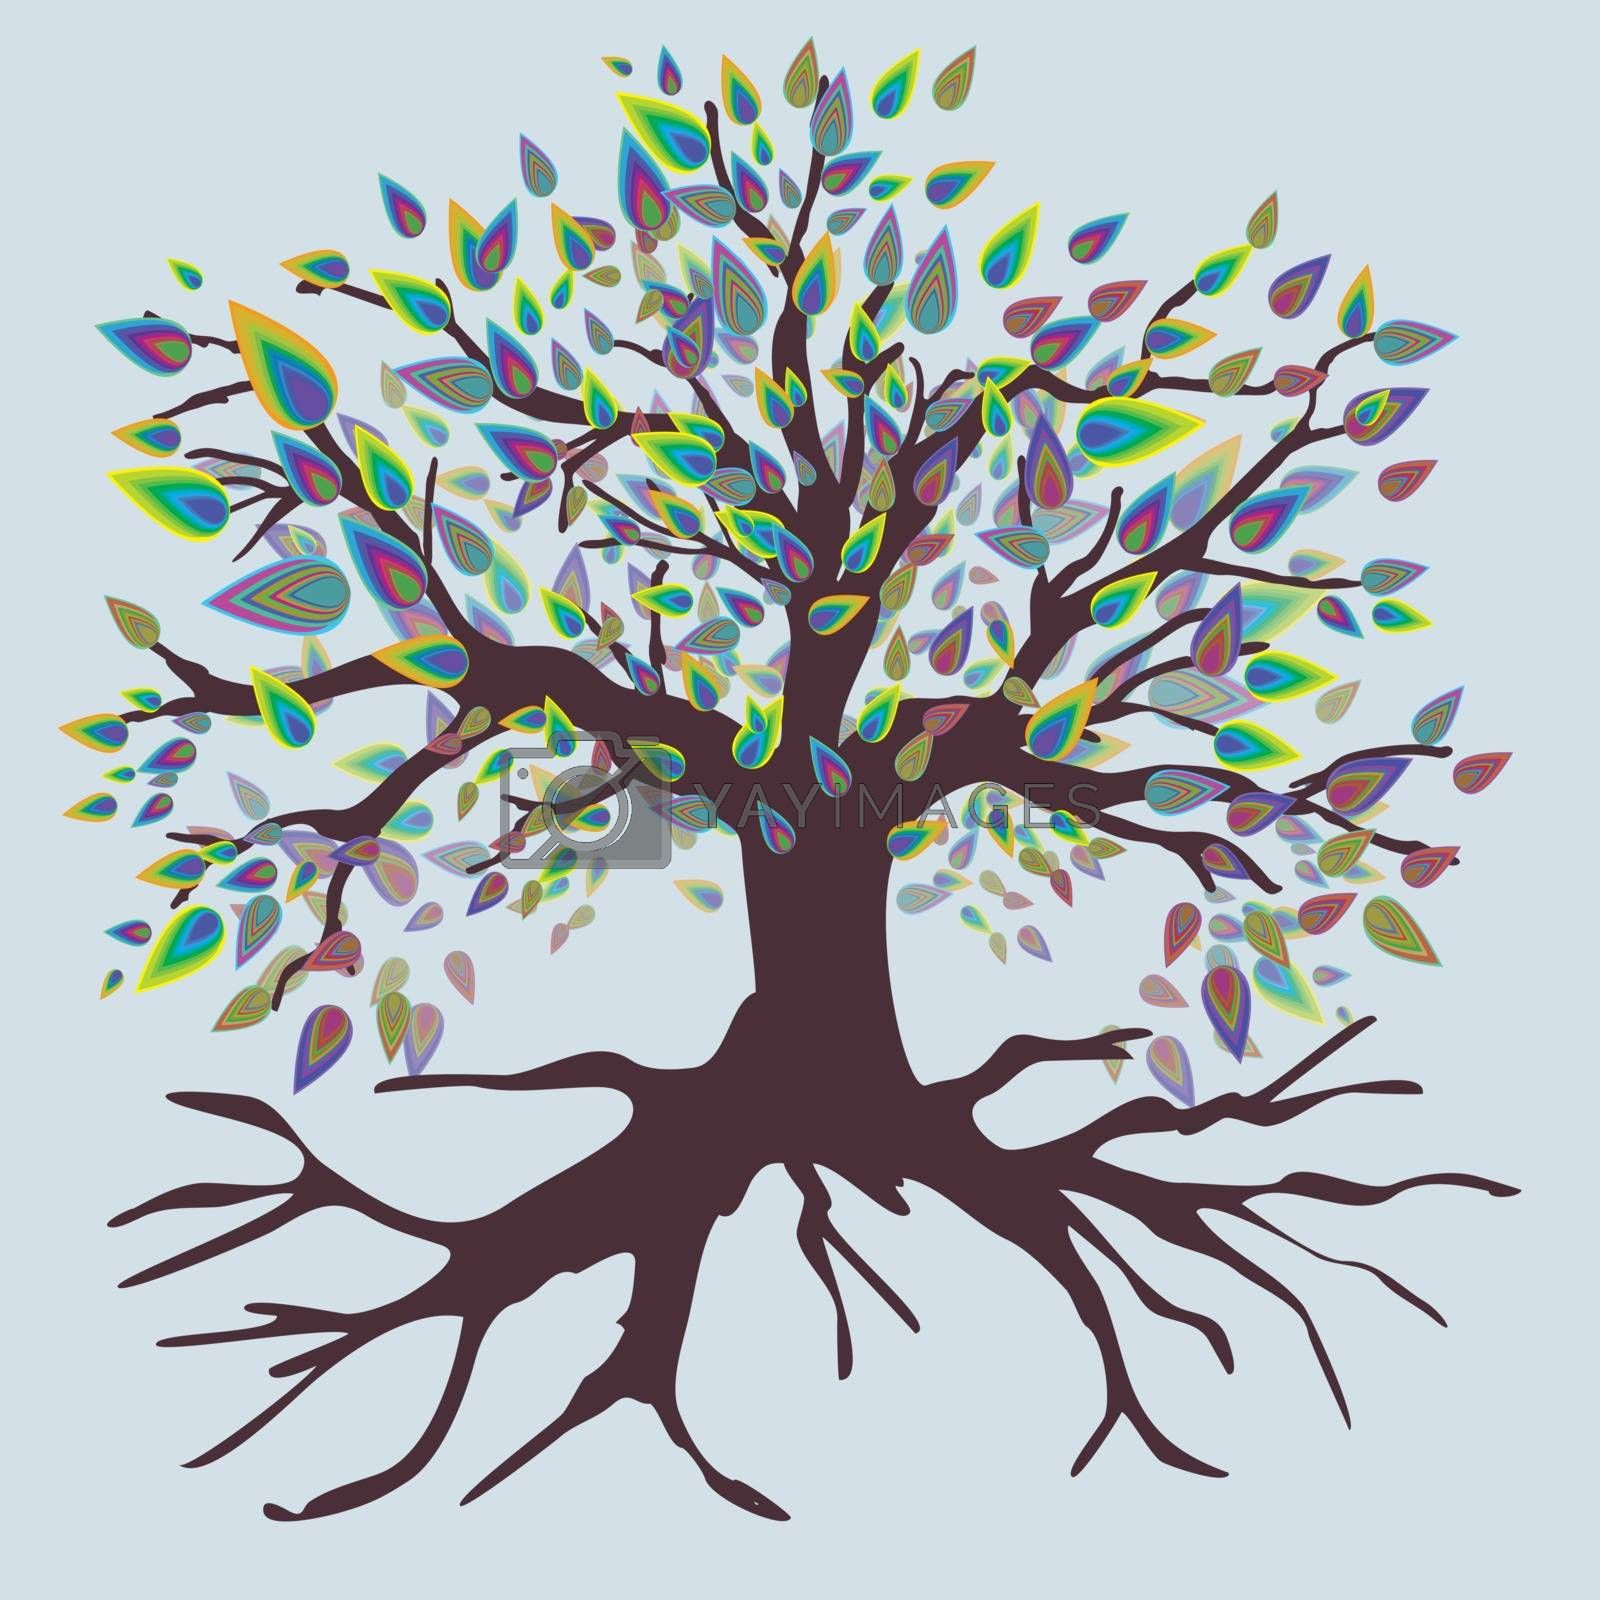 A tree of life with leaf shaped rainbow colored leafs.